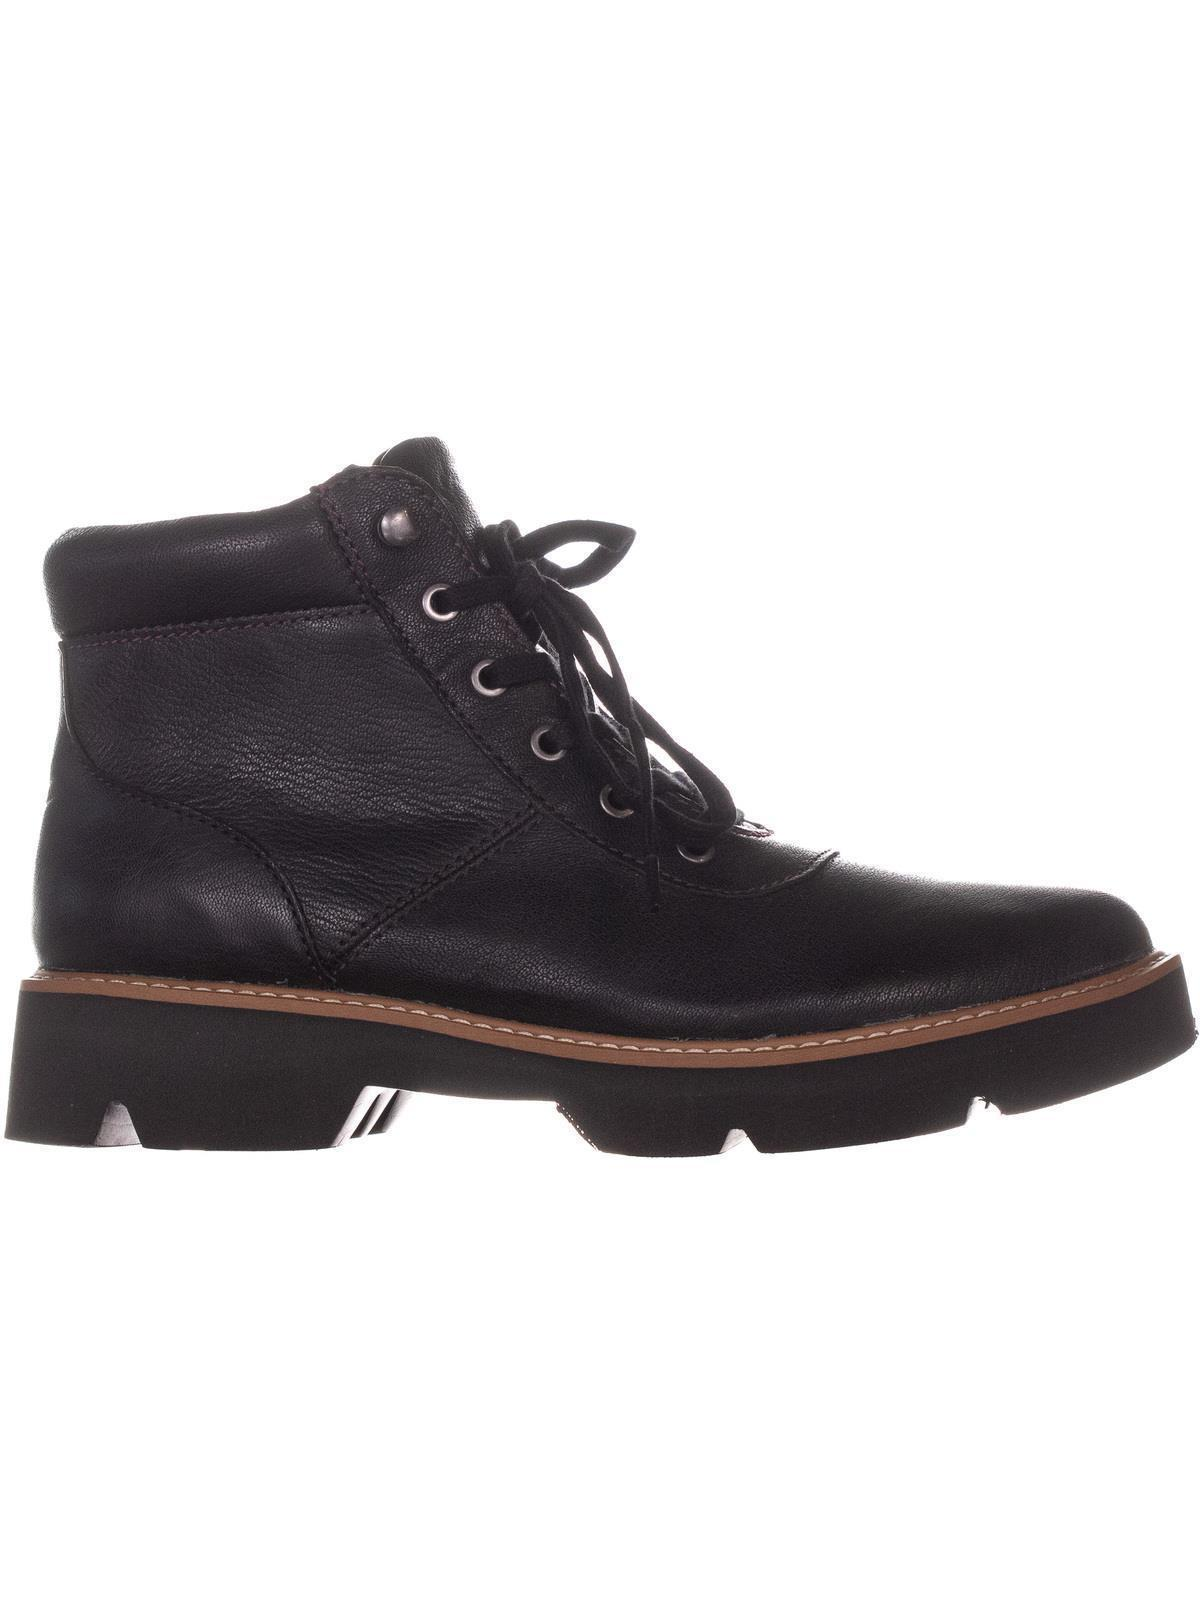 Naturalizer Lucy Lace Up Boots Black Leather